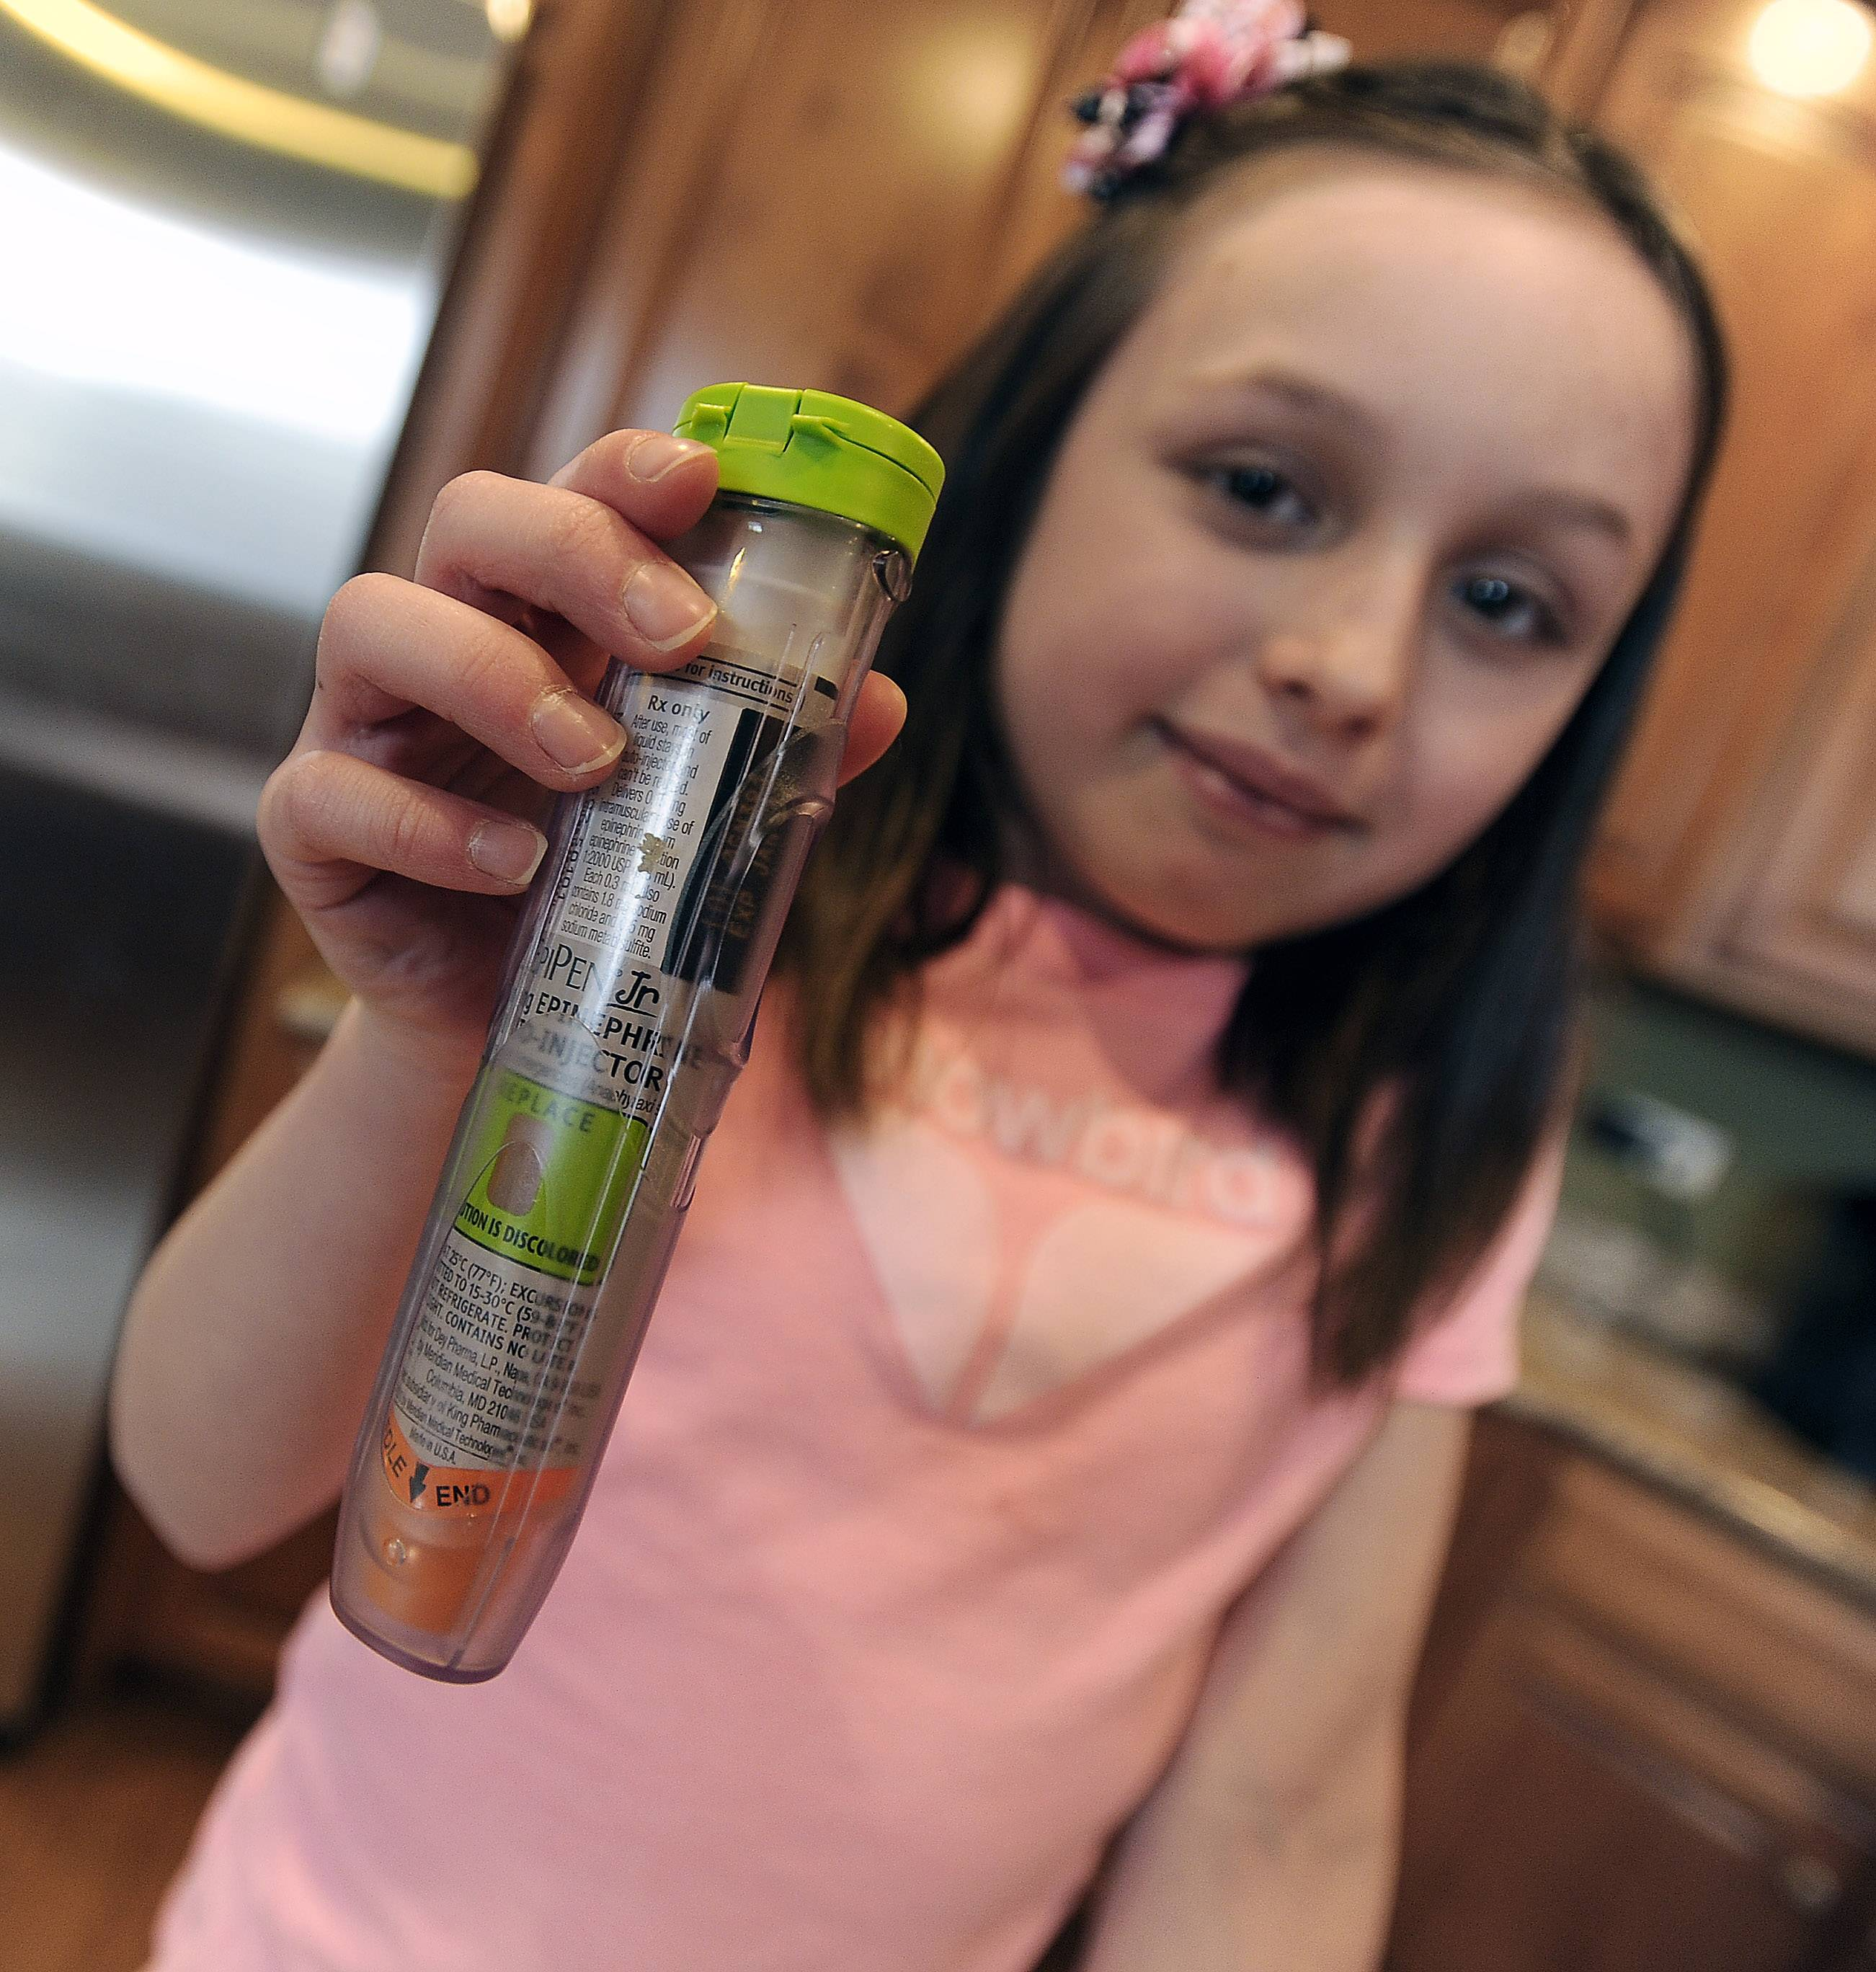 Lucca Teuscher, 8, holds up the Epinephrine pen she must use when she has an attack caused by her life-threatening peanut allergy.